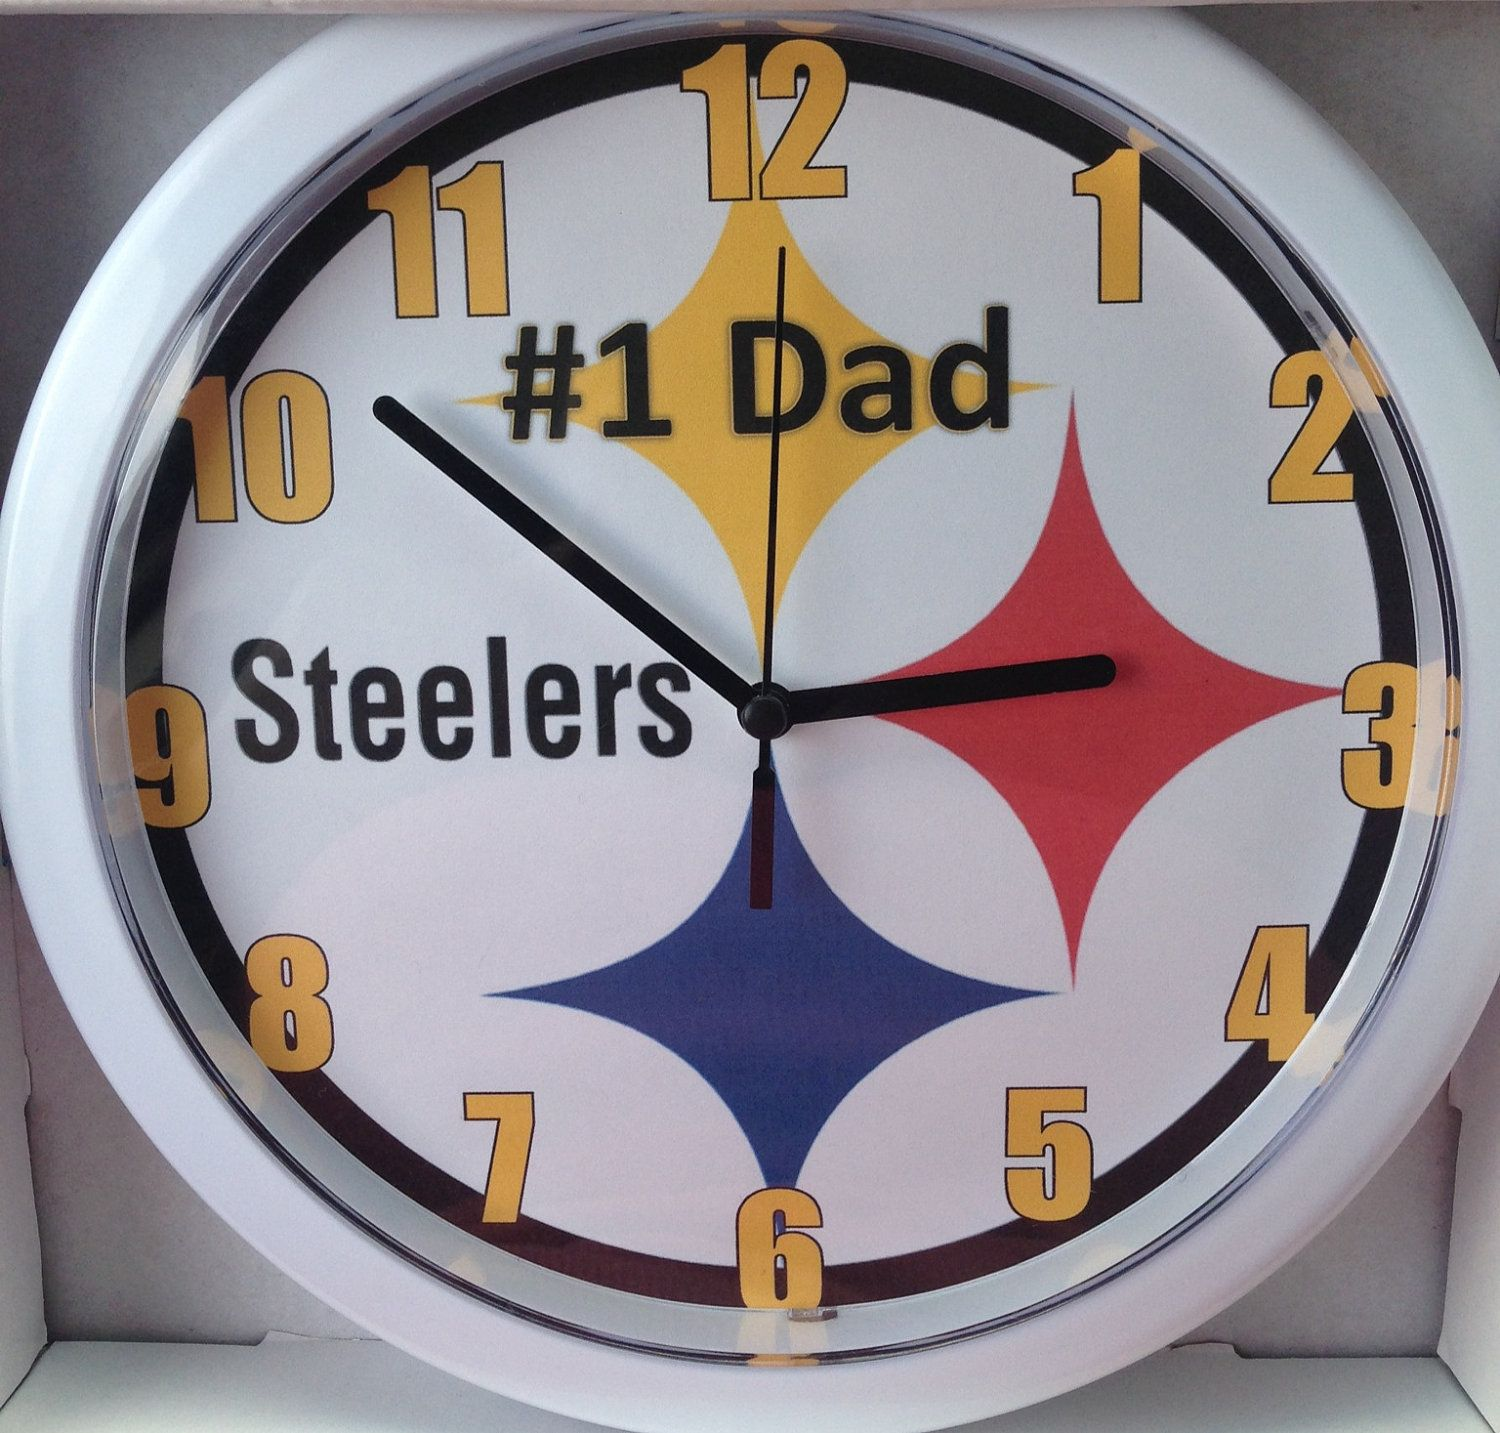 Pittsburgh steelerspersonalized pittsburgh steelers wall clock by pittsburgh steelerspersonalized pittsburgh steelers wall clock by dajshop on etsy 1800 amipublicfo Image collections